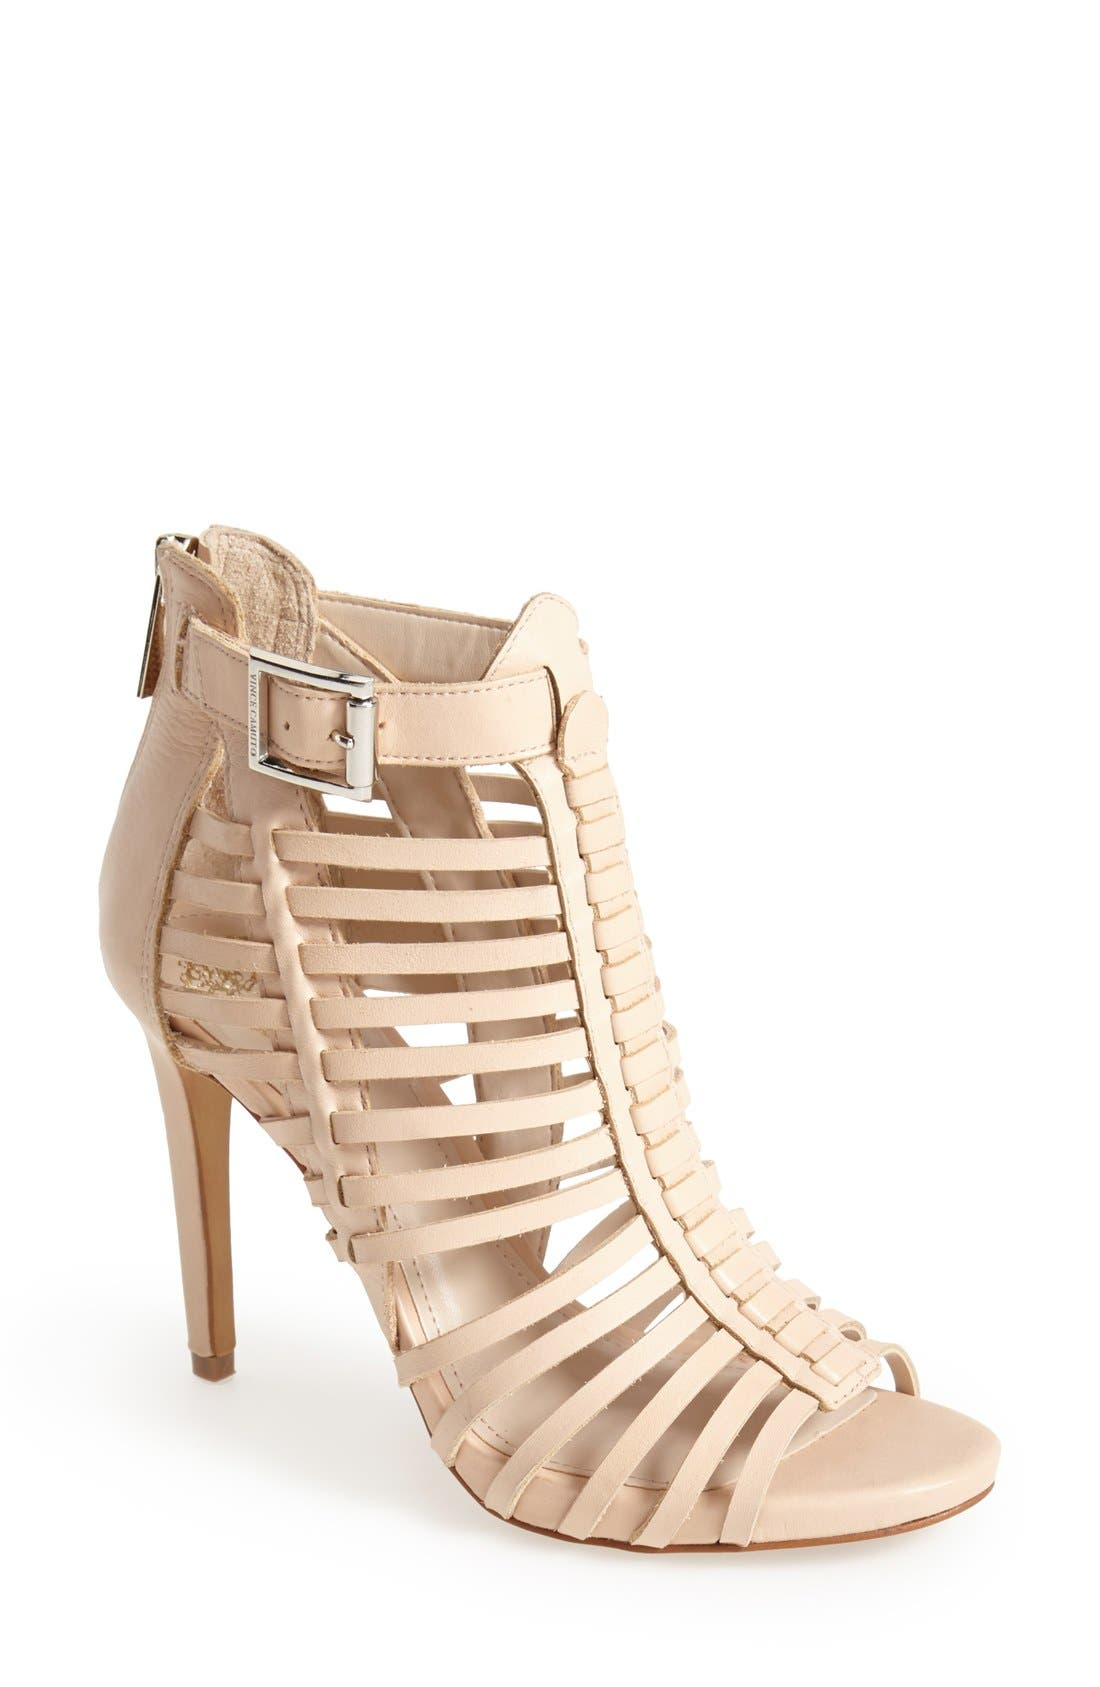 Alternate Image 1 Selected - Vince Camuto 'Remmie' Leather Cage Sandal (Women)